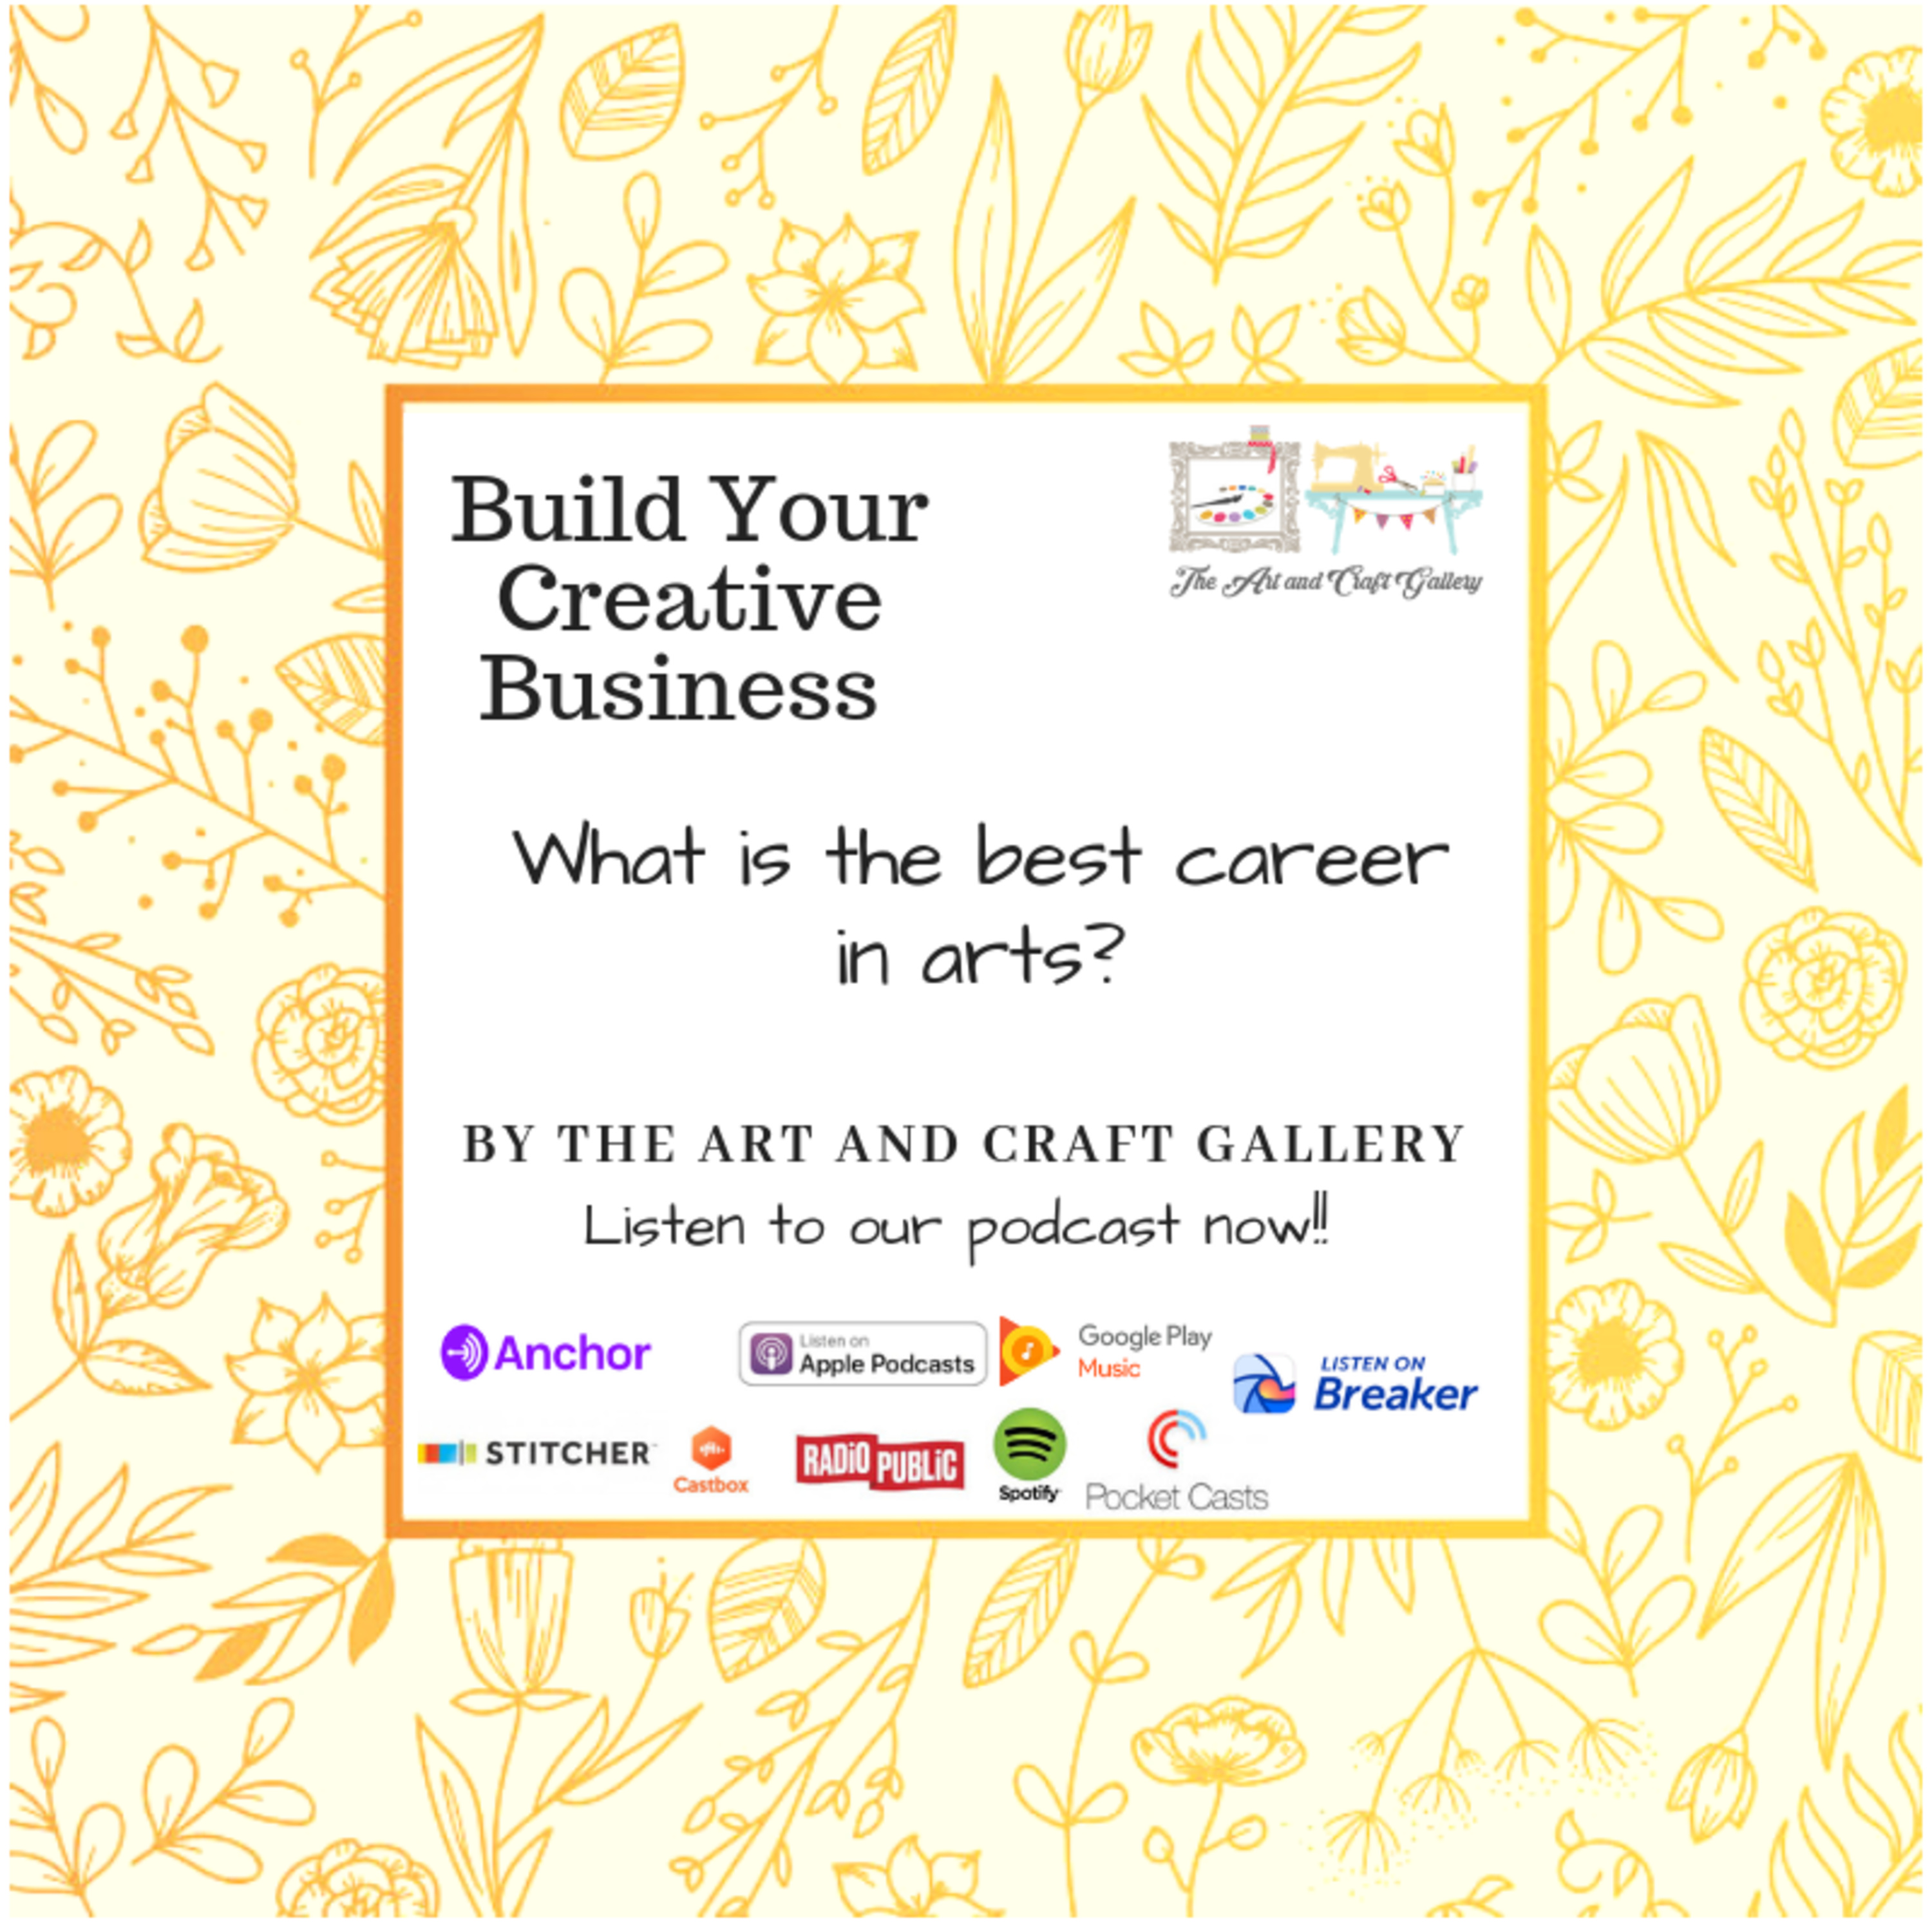 What is the best career in arts?